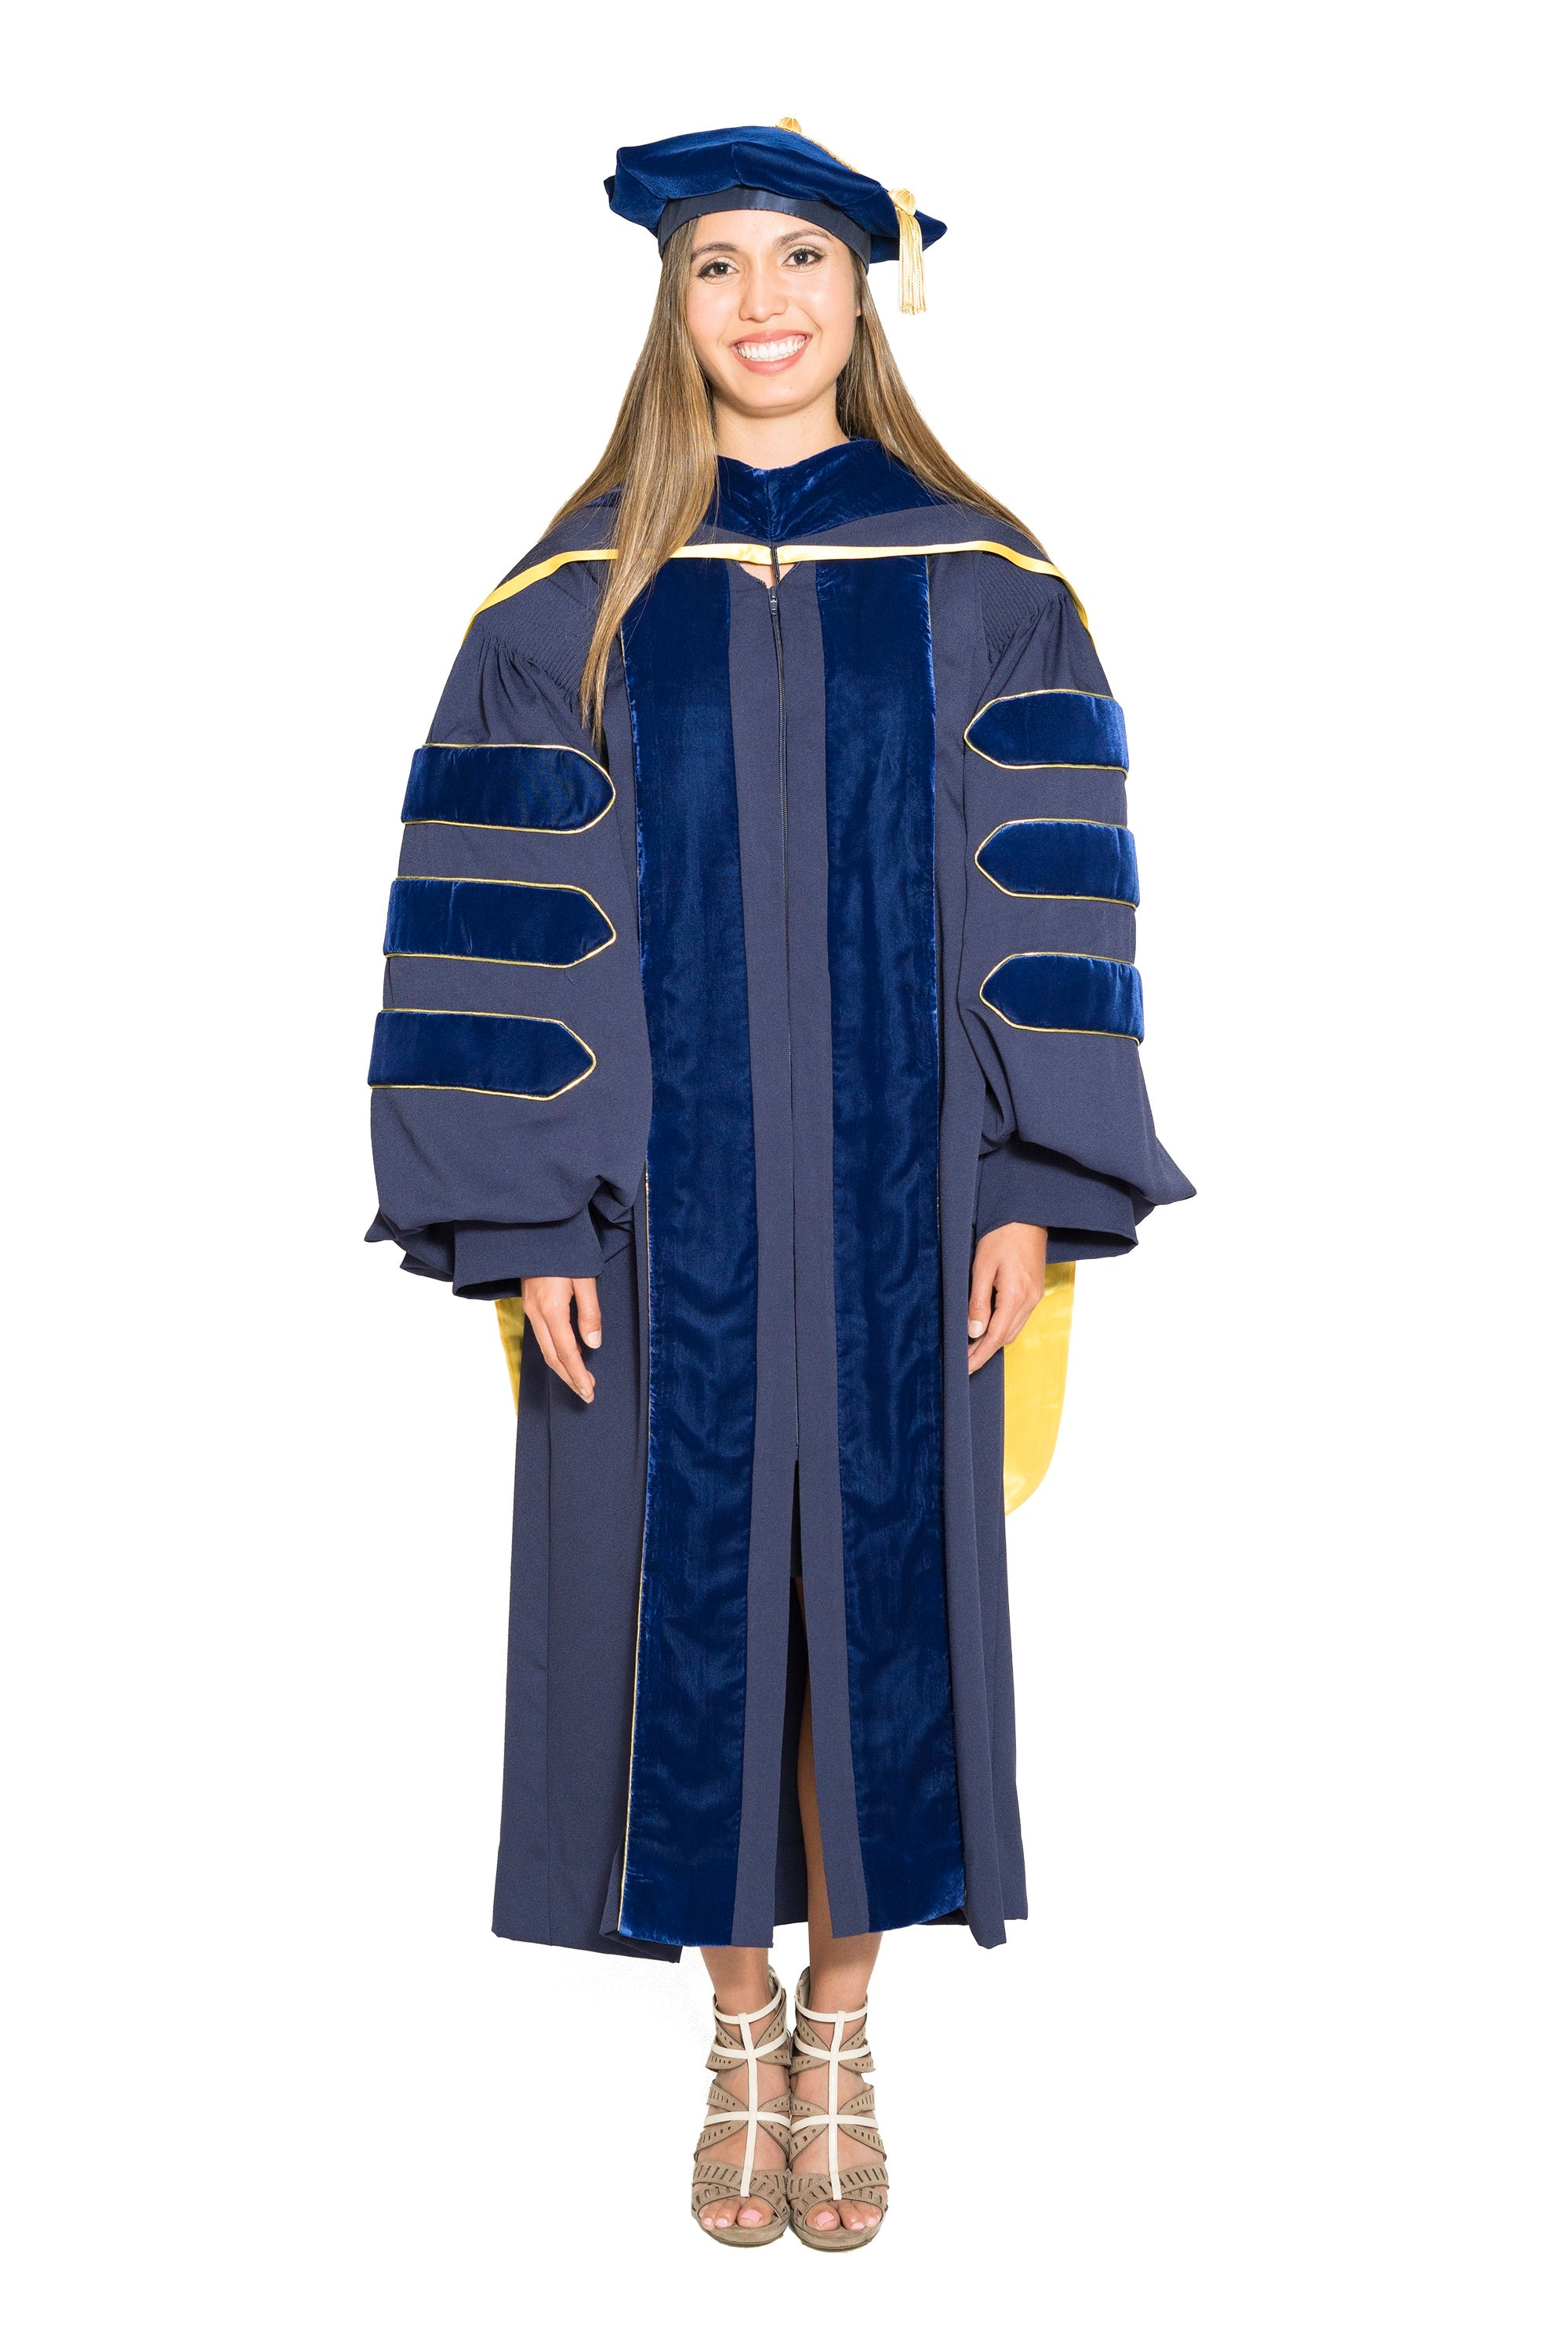 University of California Complete Doctoral Regalia - Doctoral Gown, PhD & M.D. Hood, and 8-sided Cap (Tam) with Tassel